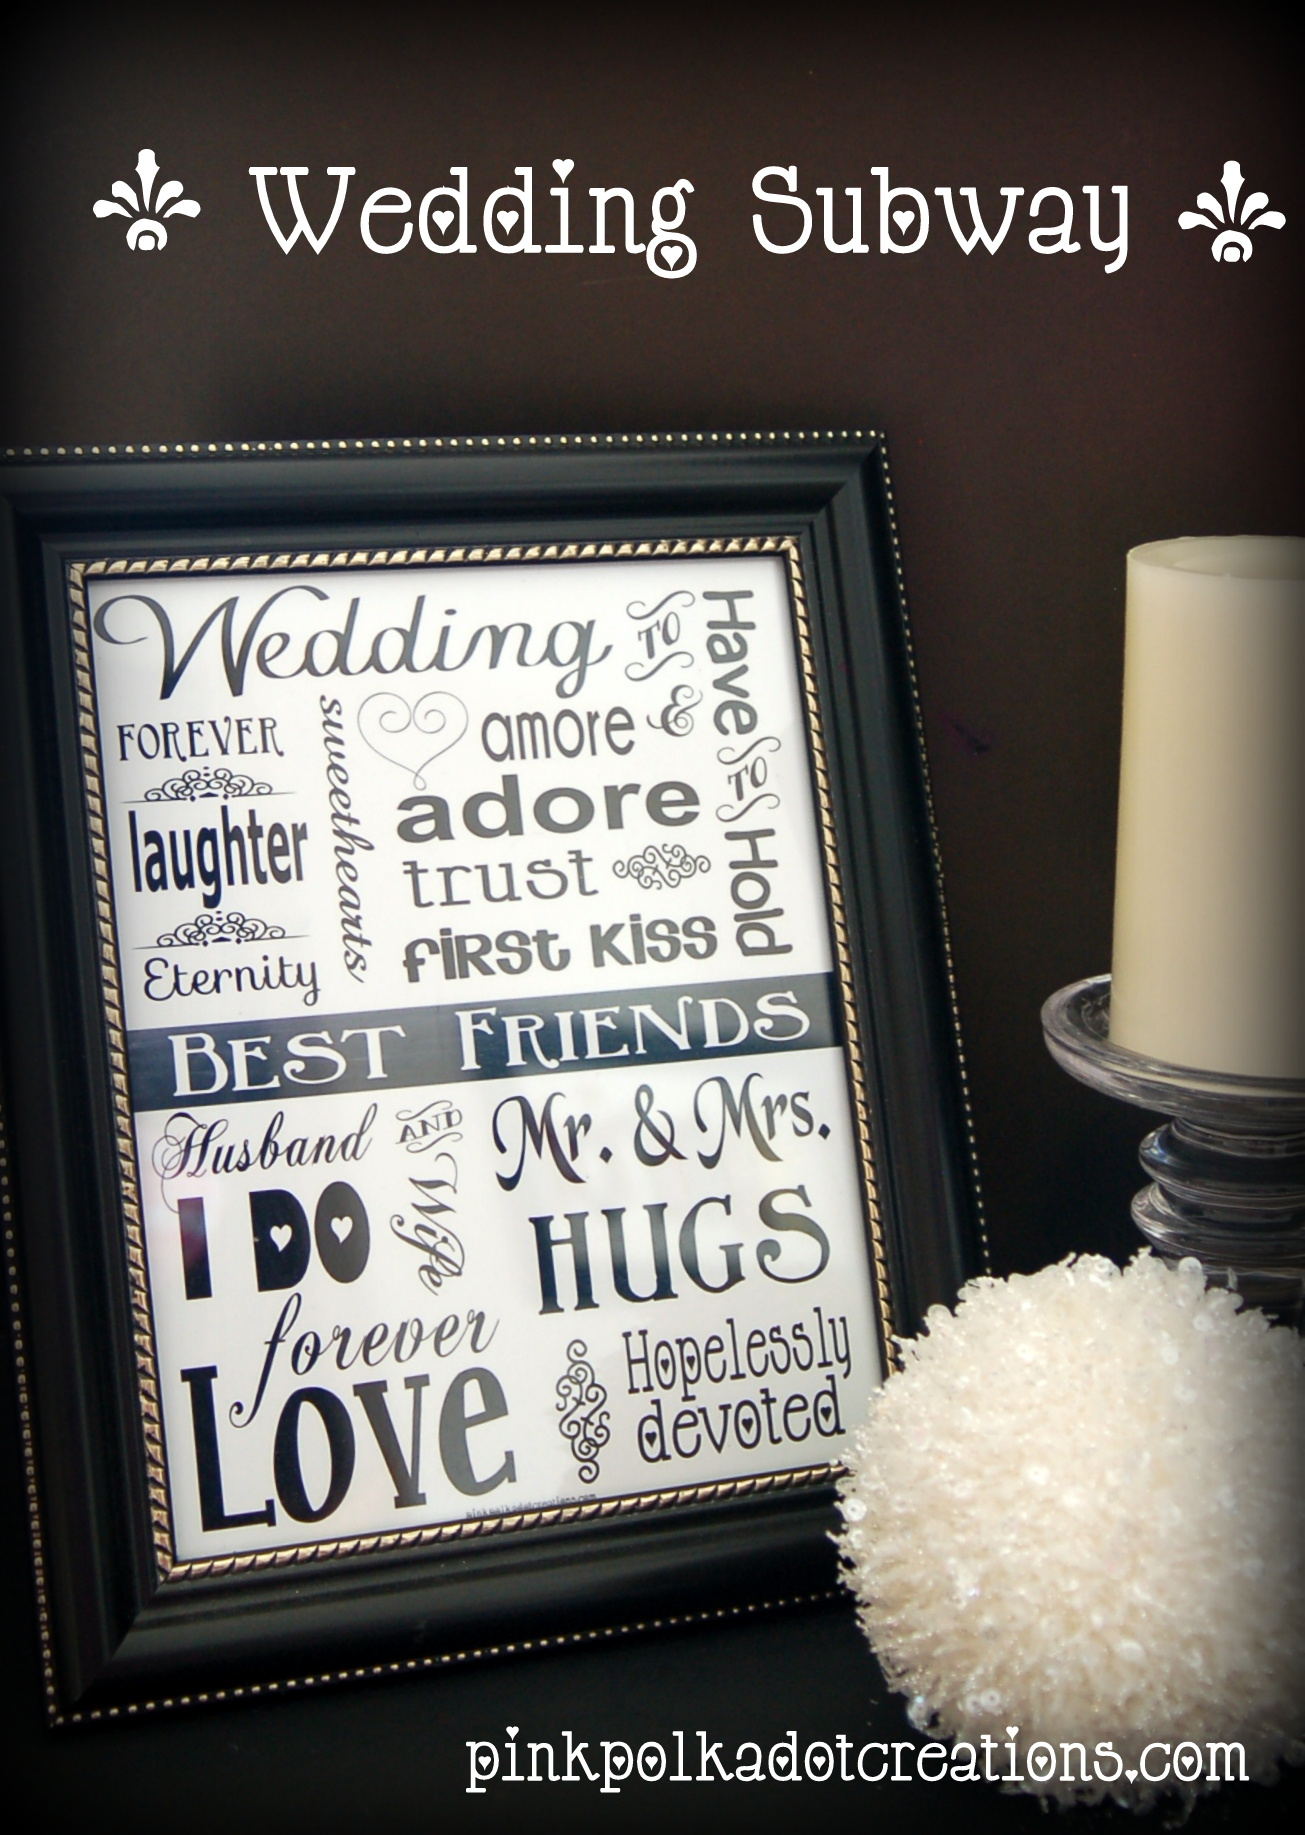 Wedding Gift Subway Art : This has been a fun wedding gift that my daughter and I have used ...